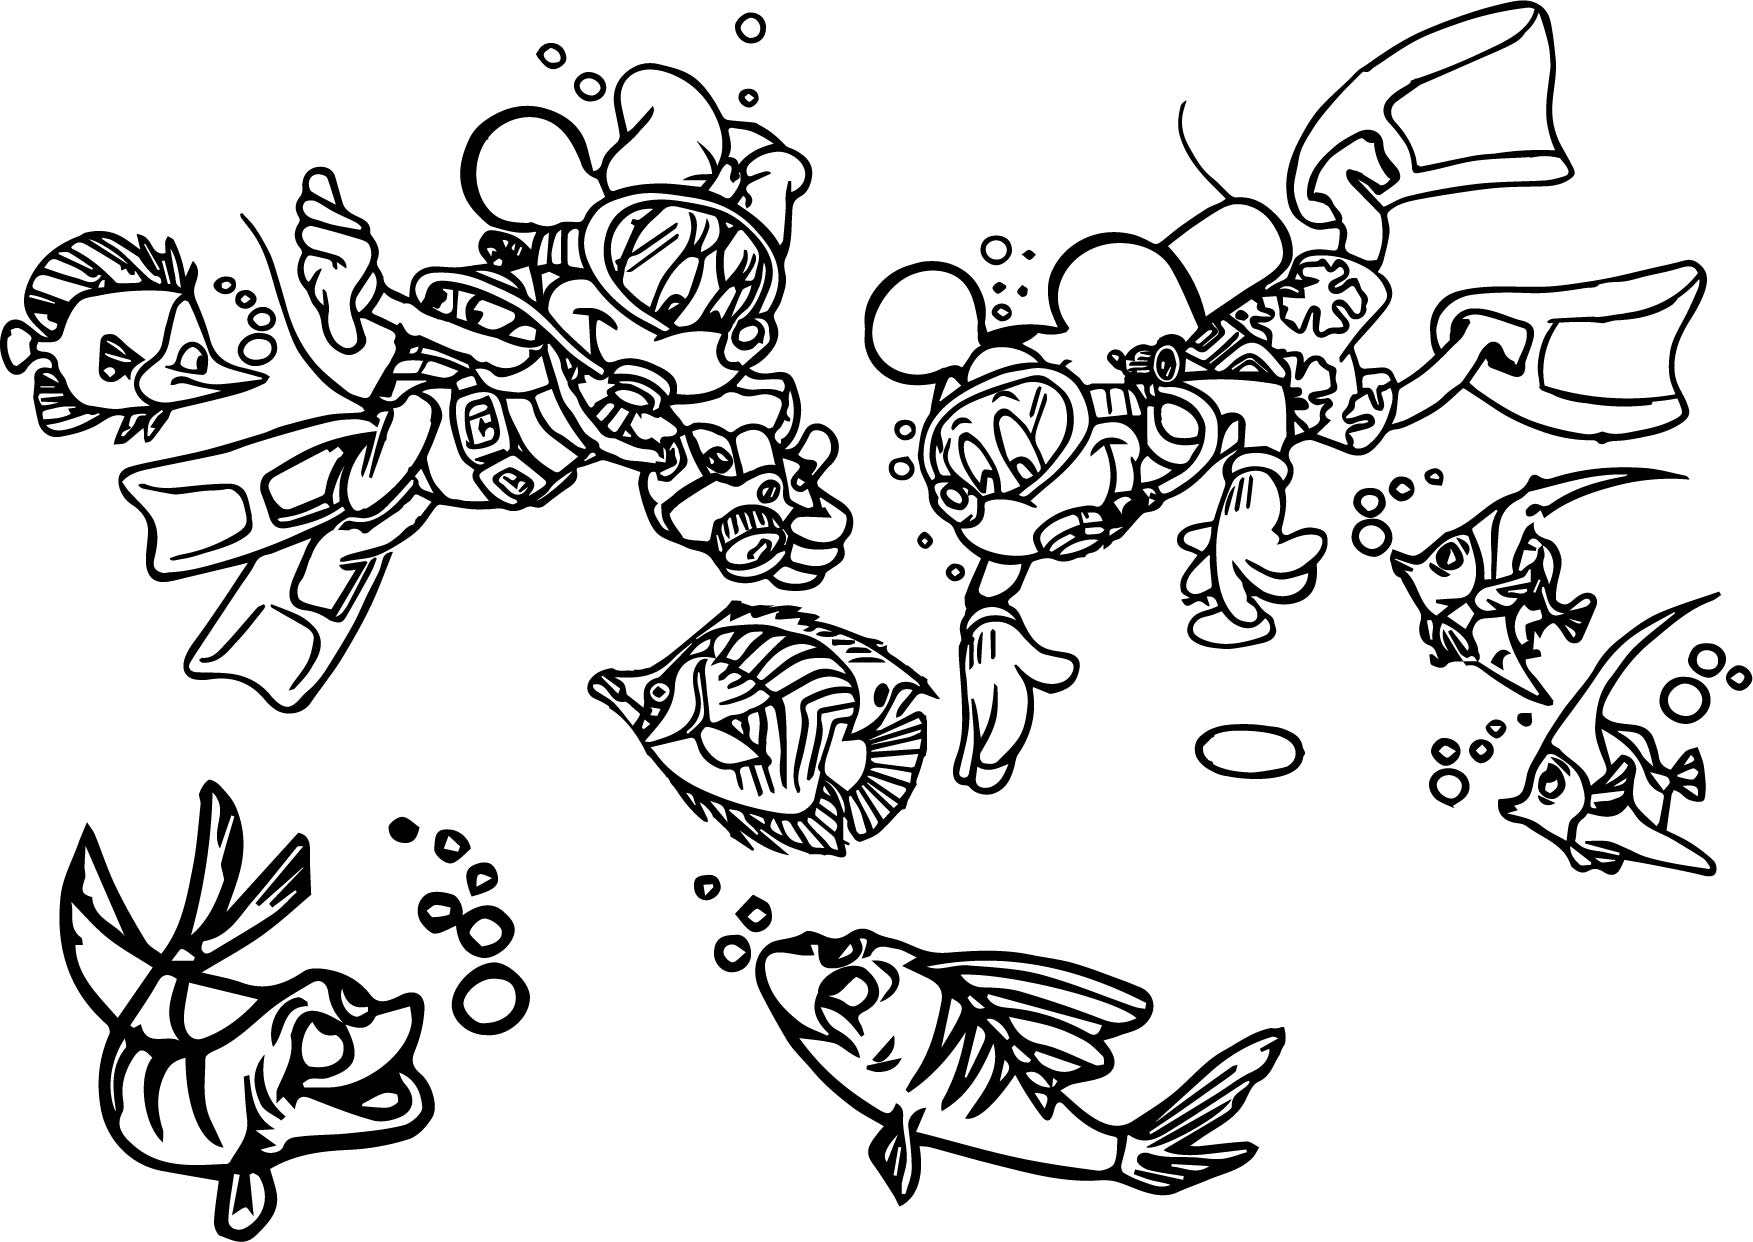 Disney Mickey Minnie Explore Underwater Shipwreck Coloring Page